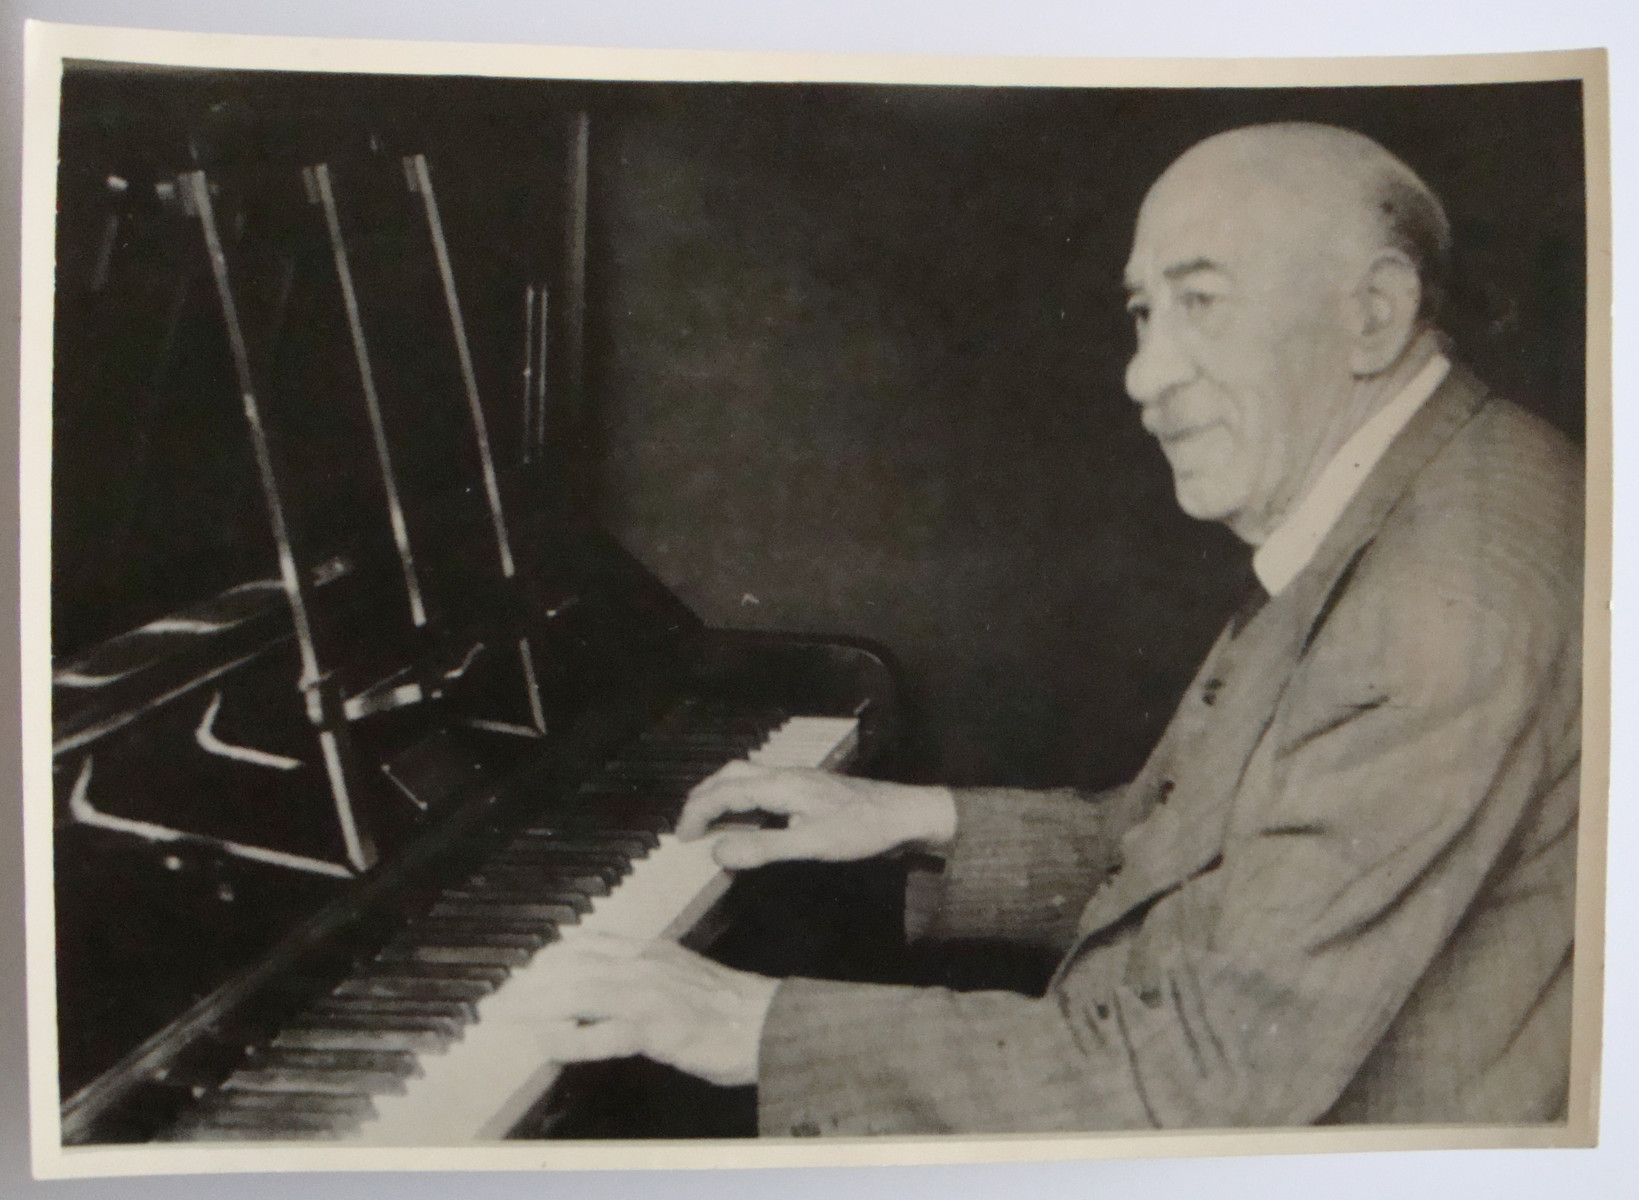 Rudolf Markovitz, an Austrian Jewish refugee and grandfather of the donor, plays the piano in an English pub.